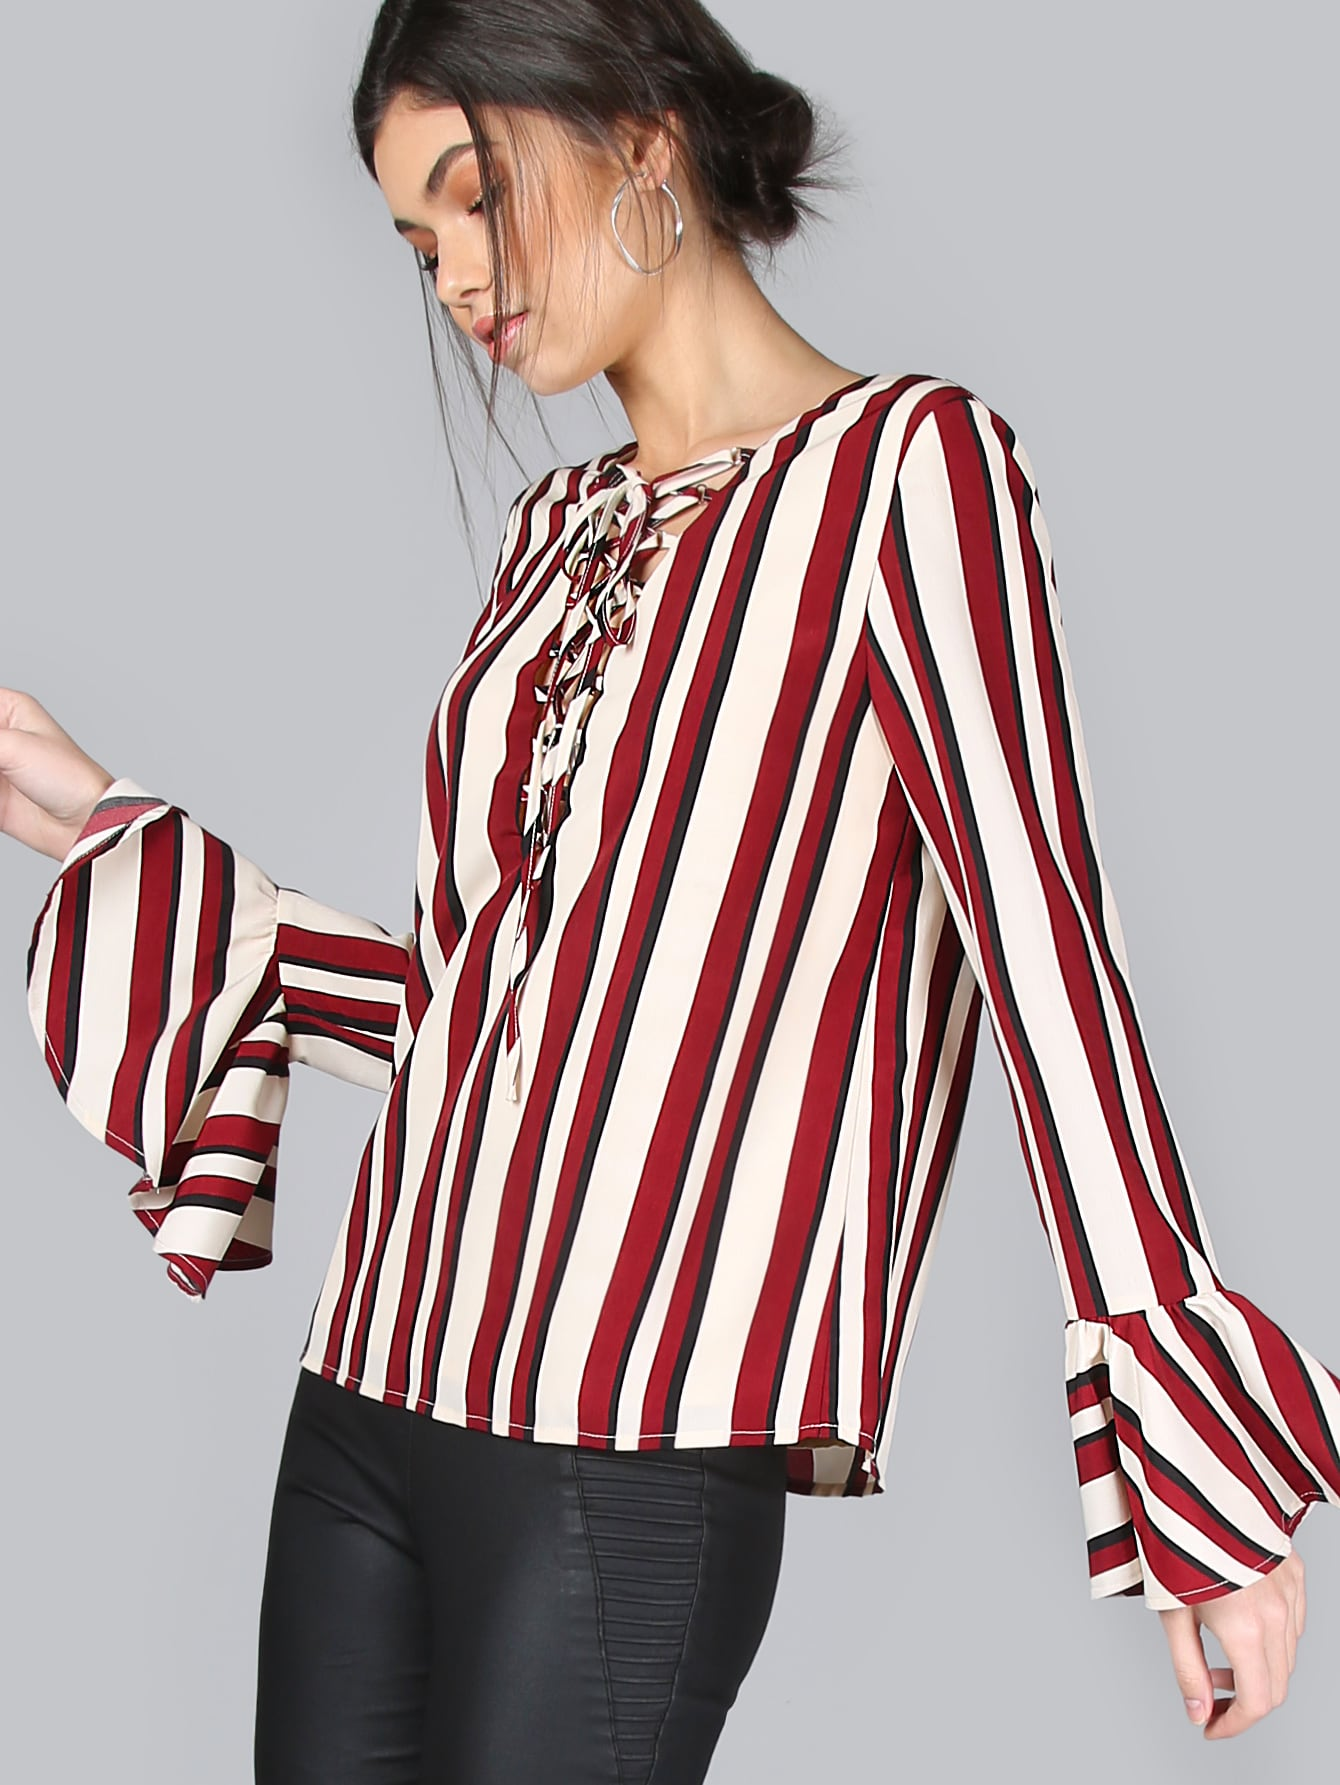 Multicolor Striped Lace Up Bell Sleeve Blouse blousemmc161128702